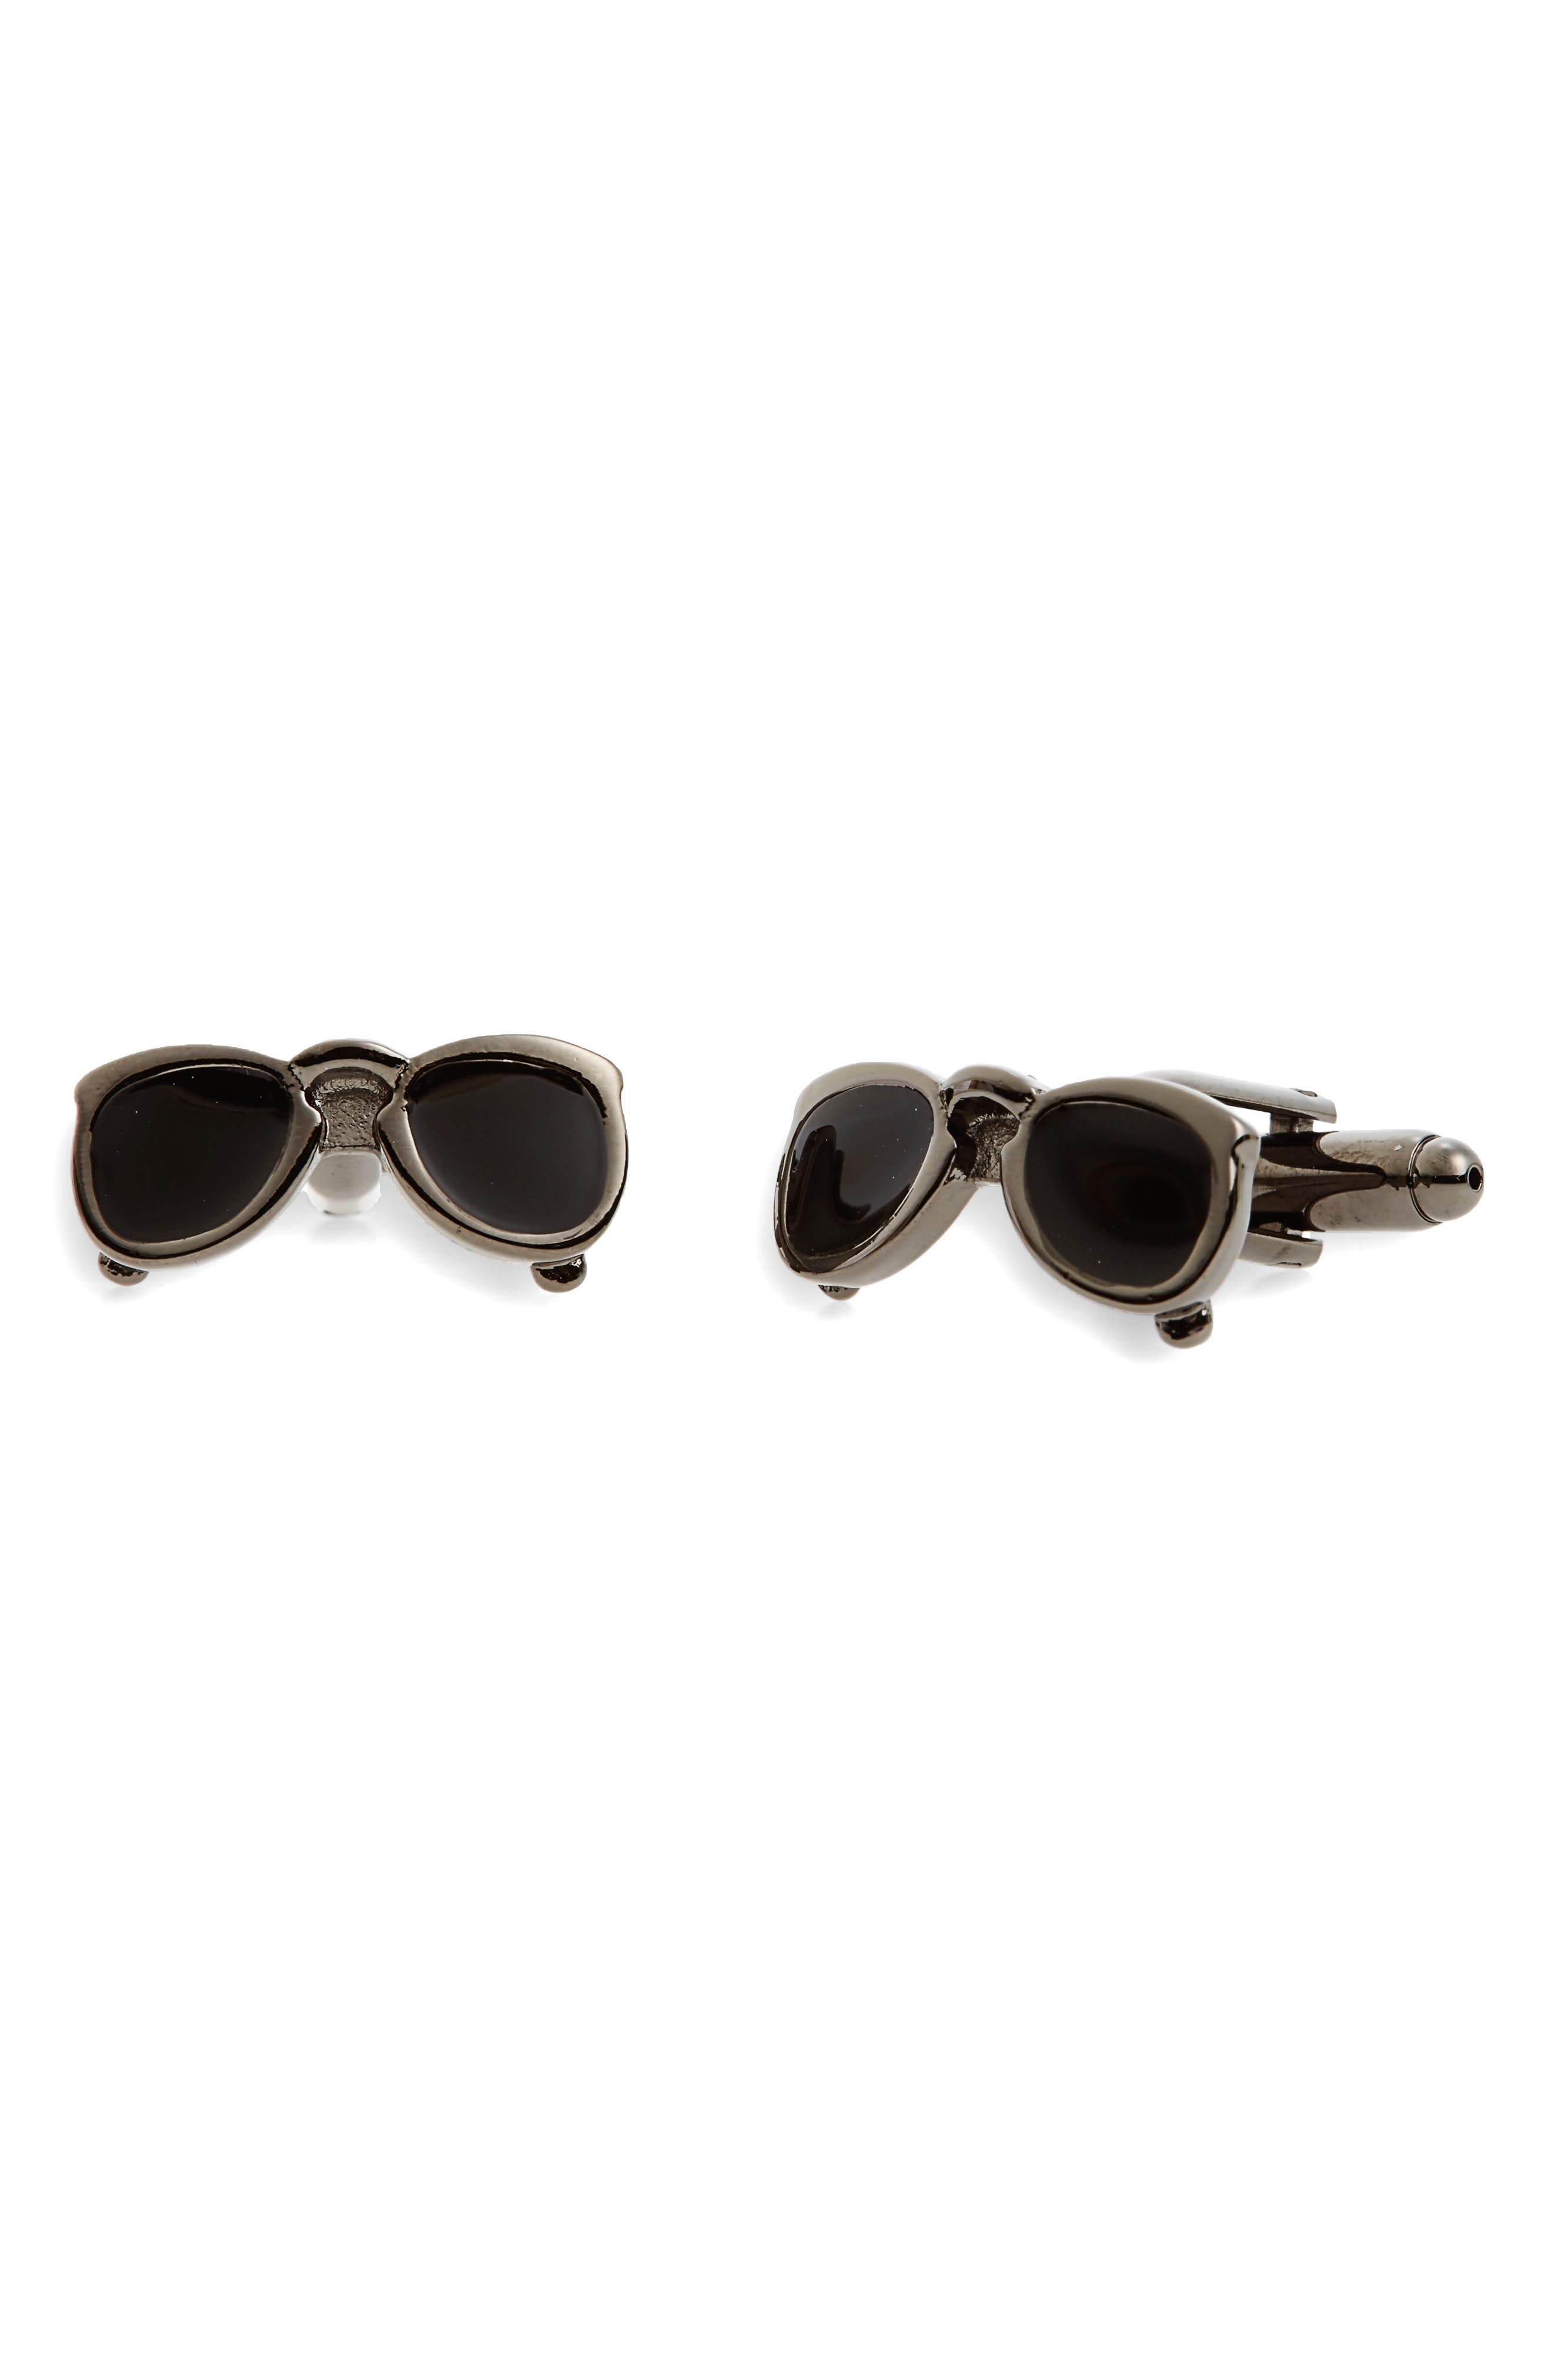 Link Up Sunglasses Cuff Links